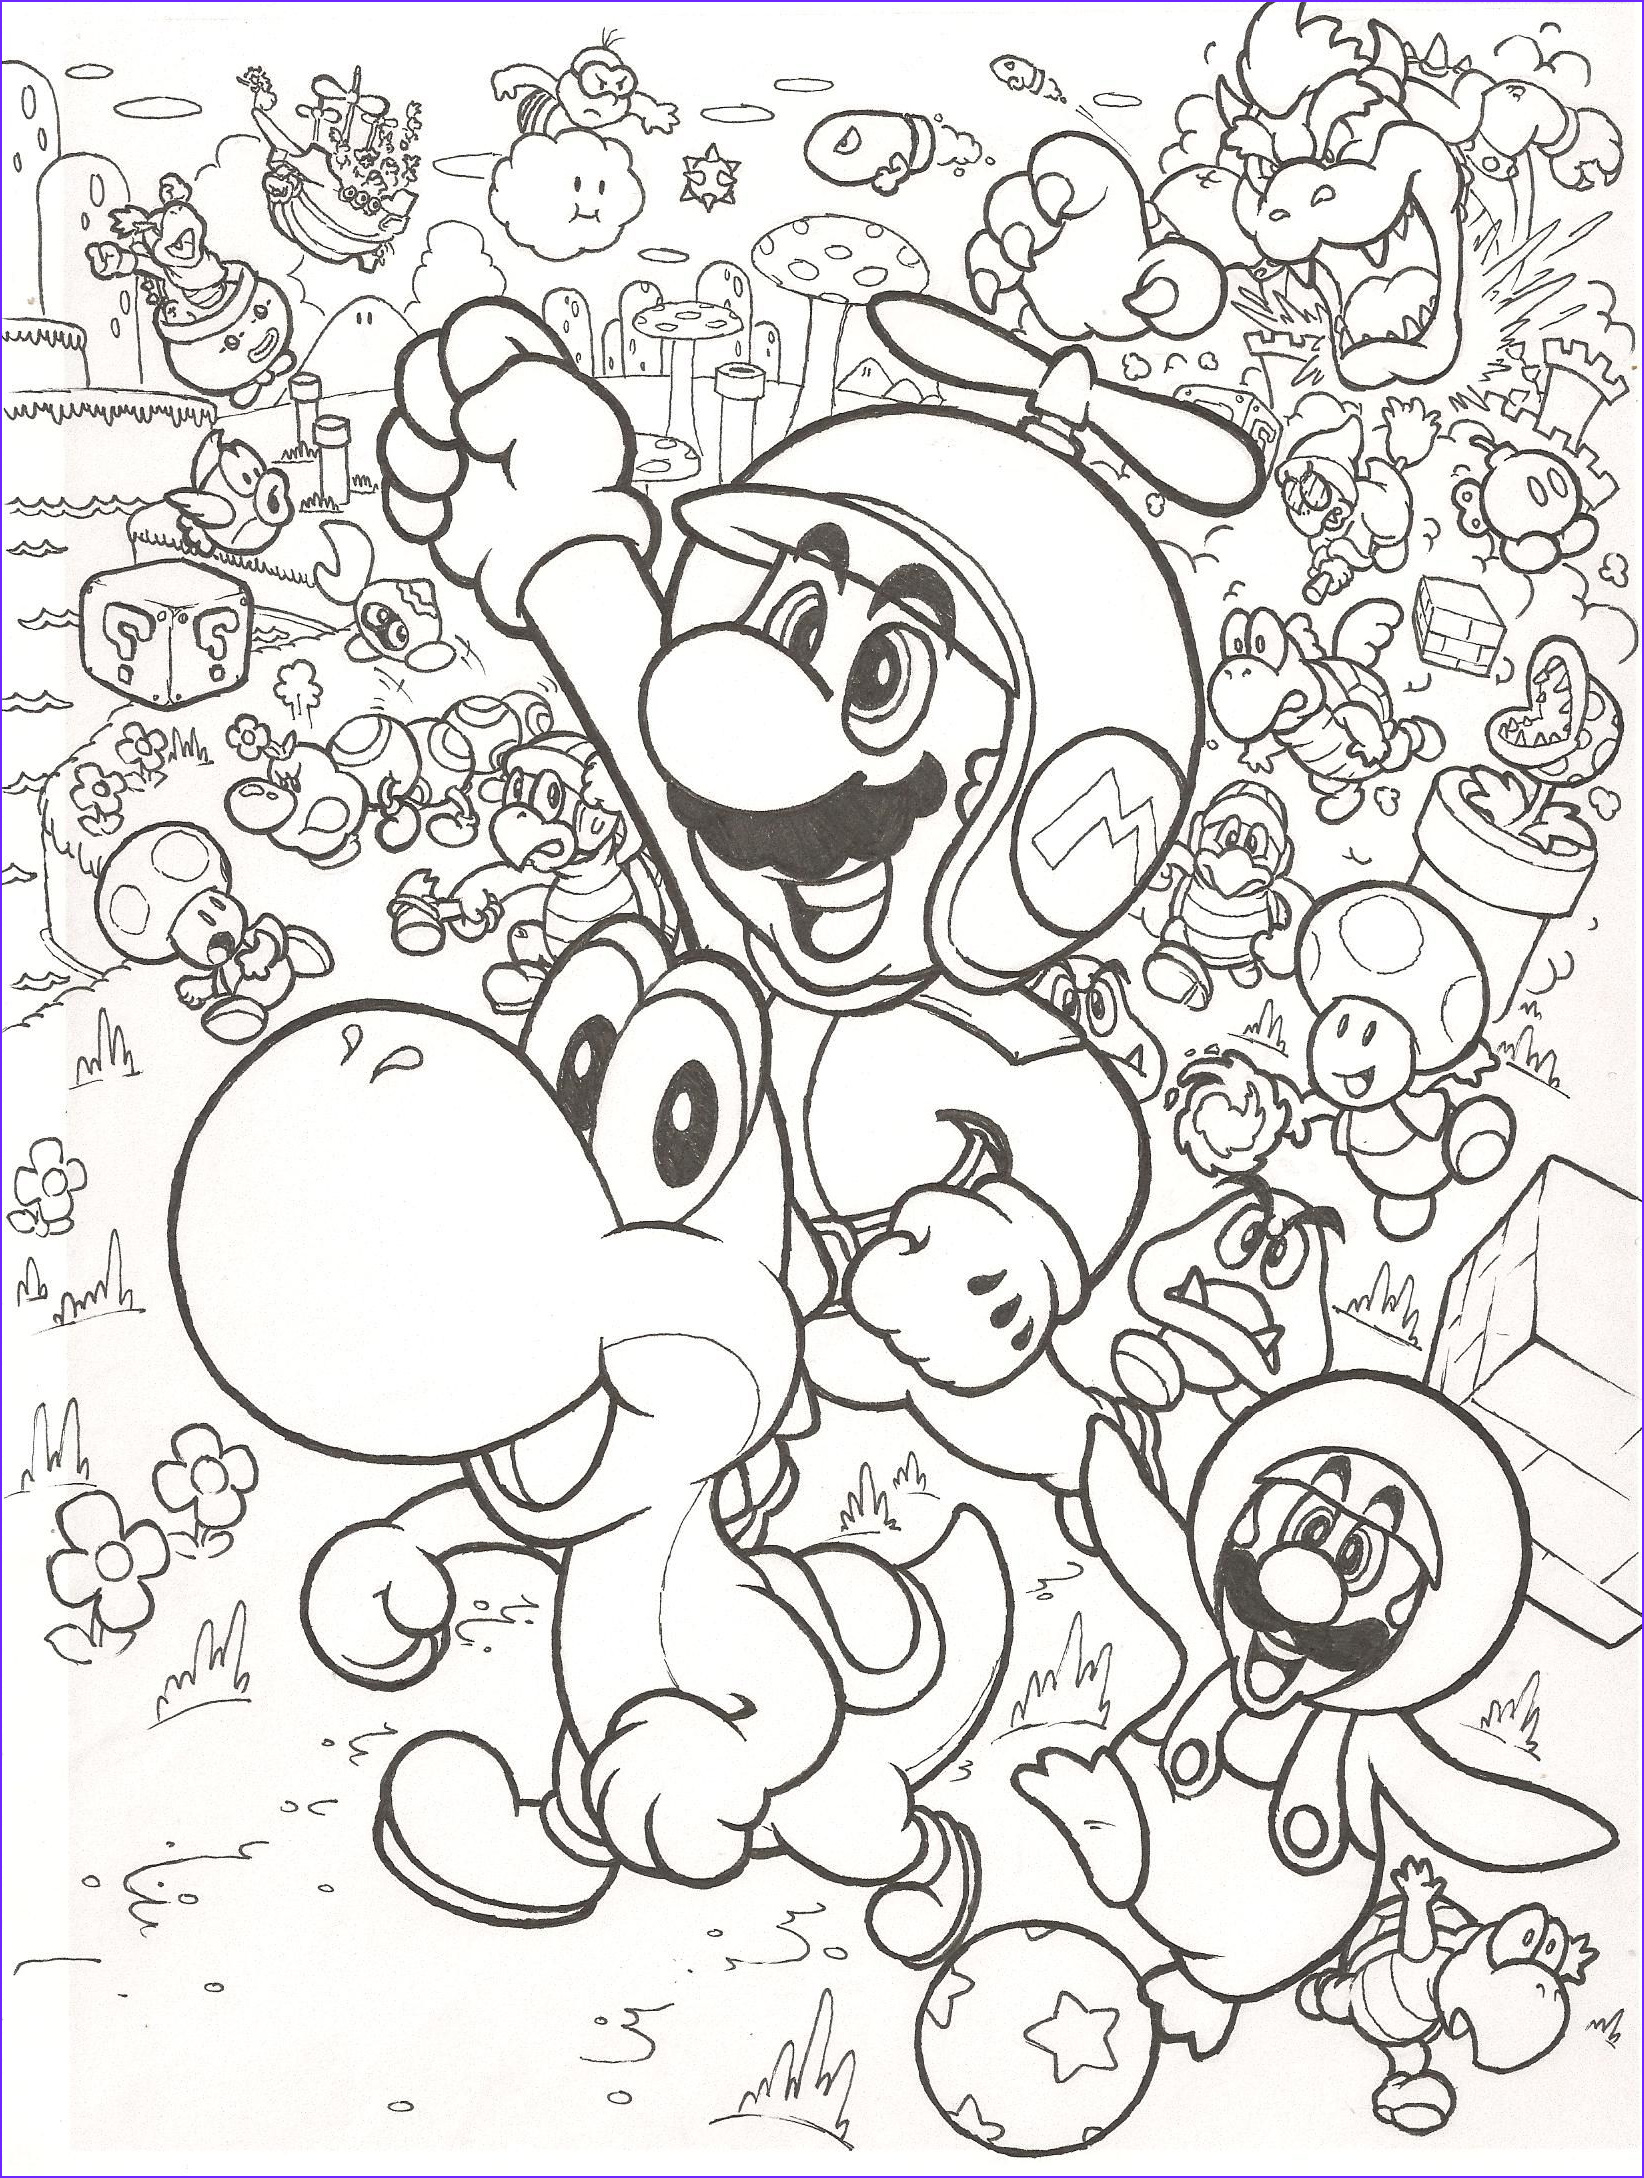 Super Smash Bros Coloring Pages New Image 3ds Super Smash Bros Coloring Pages Coloring Pages for